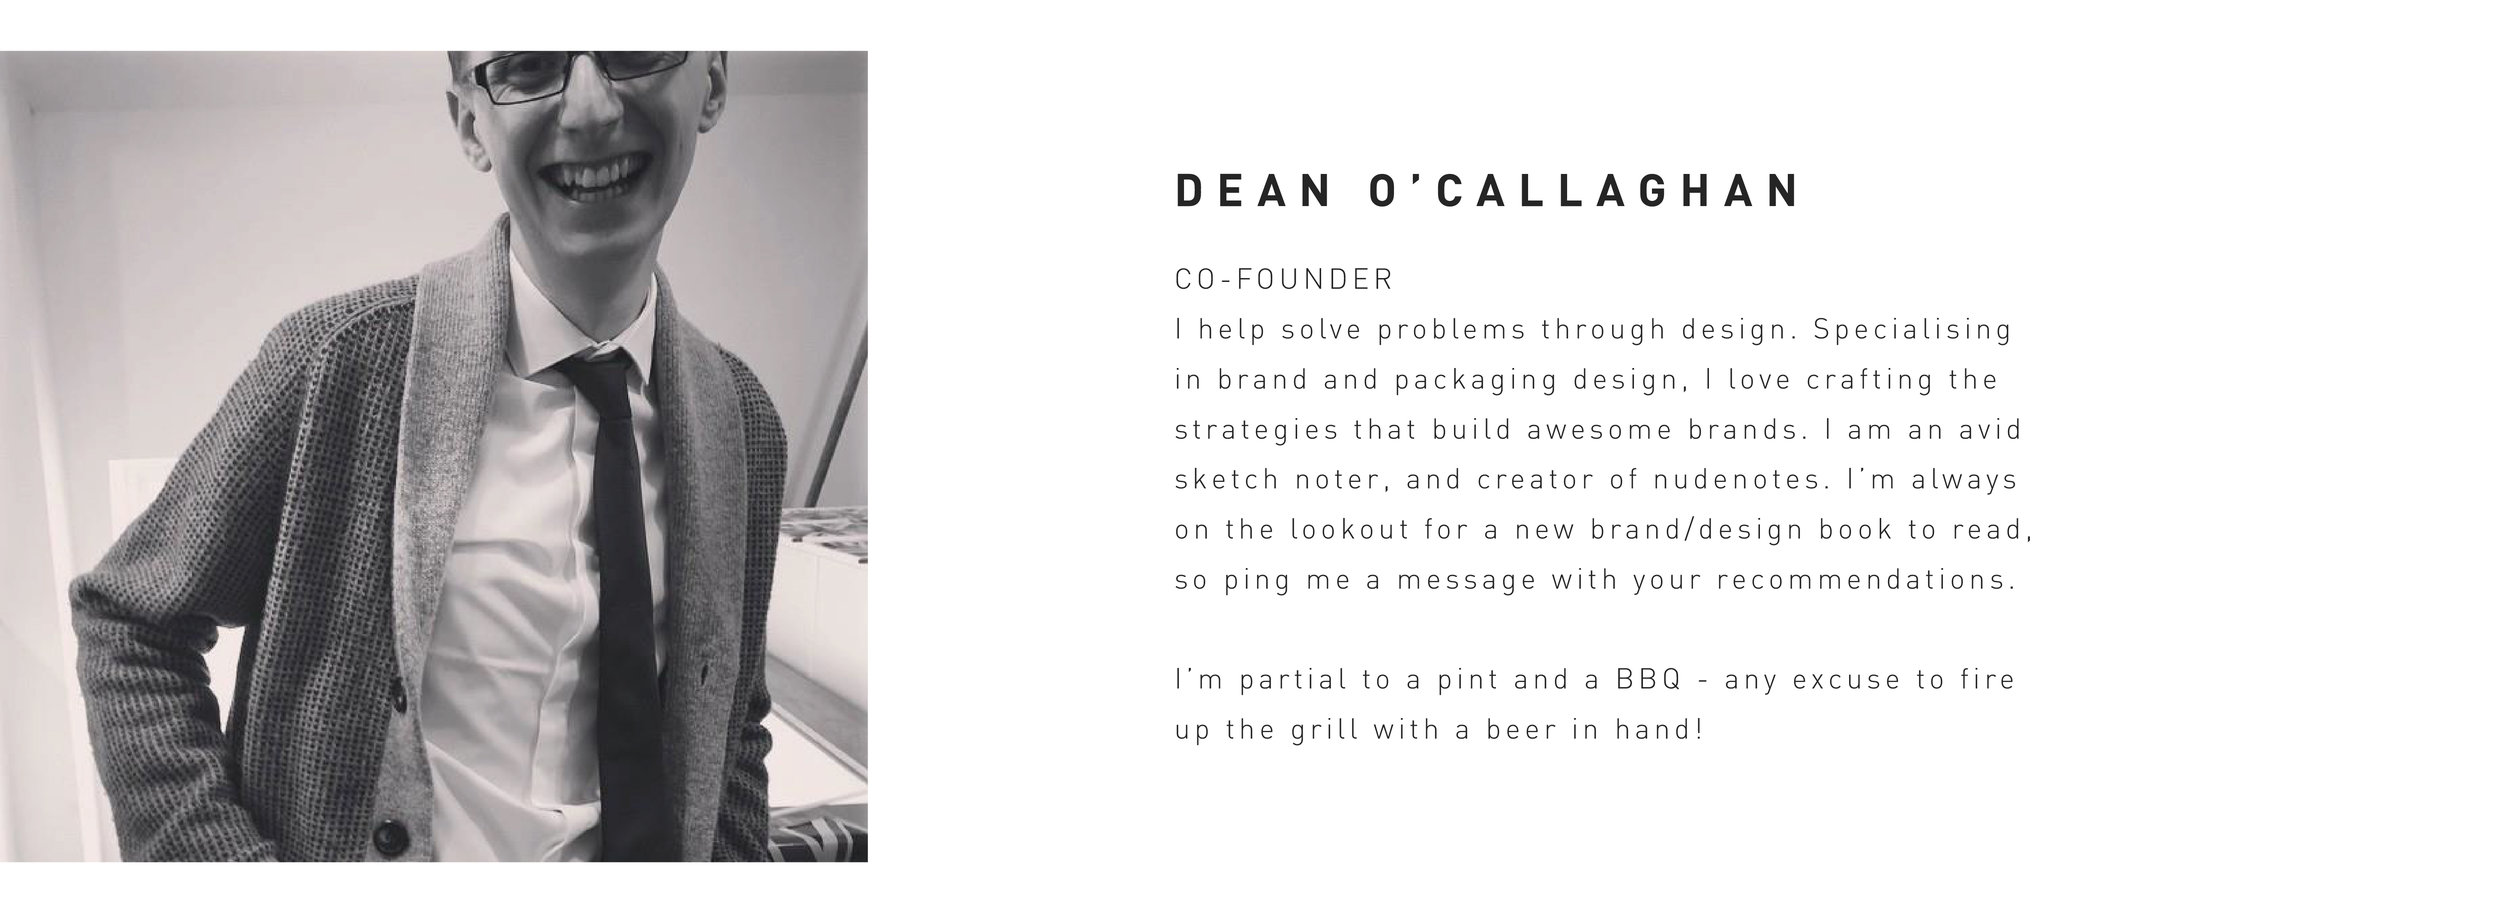 BlogSignatures_dean-o'callaghan.jpg